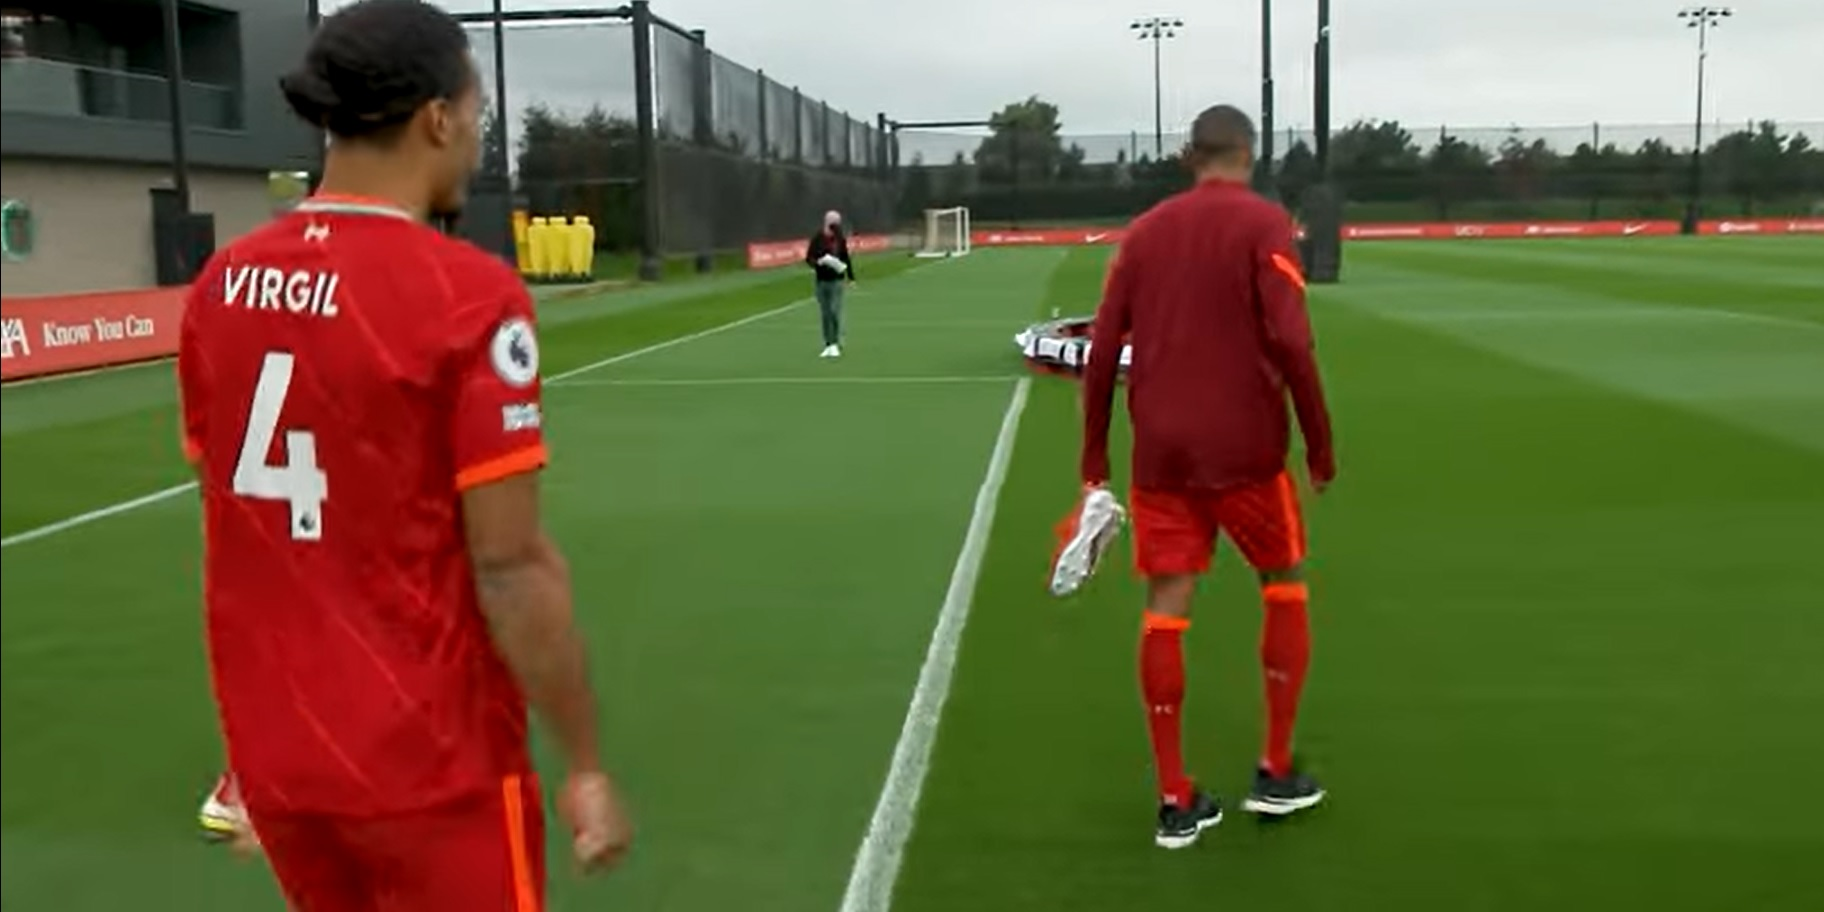 """(Video) Van Dijk rips into Matip in hilarious clip pre-team photoshoot: """"Red boots? Ballon d'Or candidate"""""""